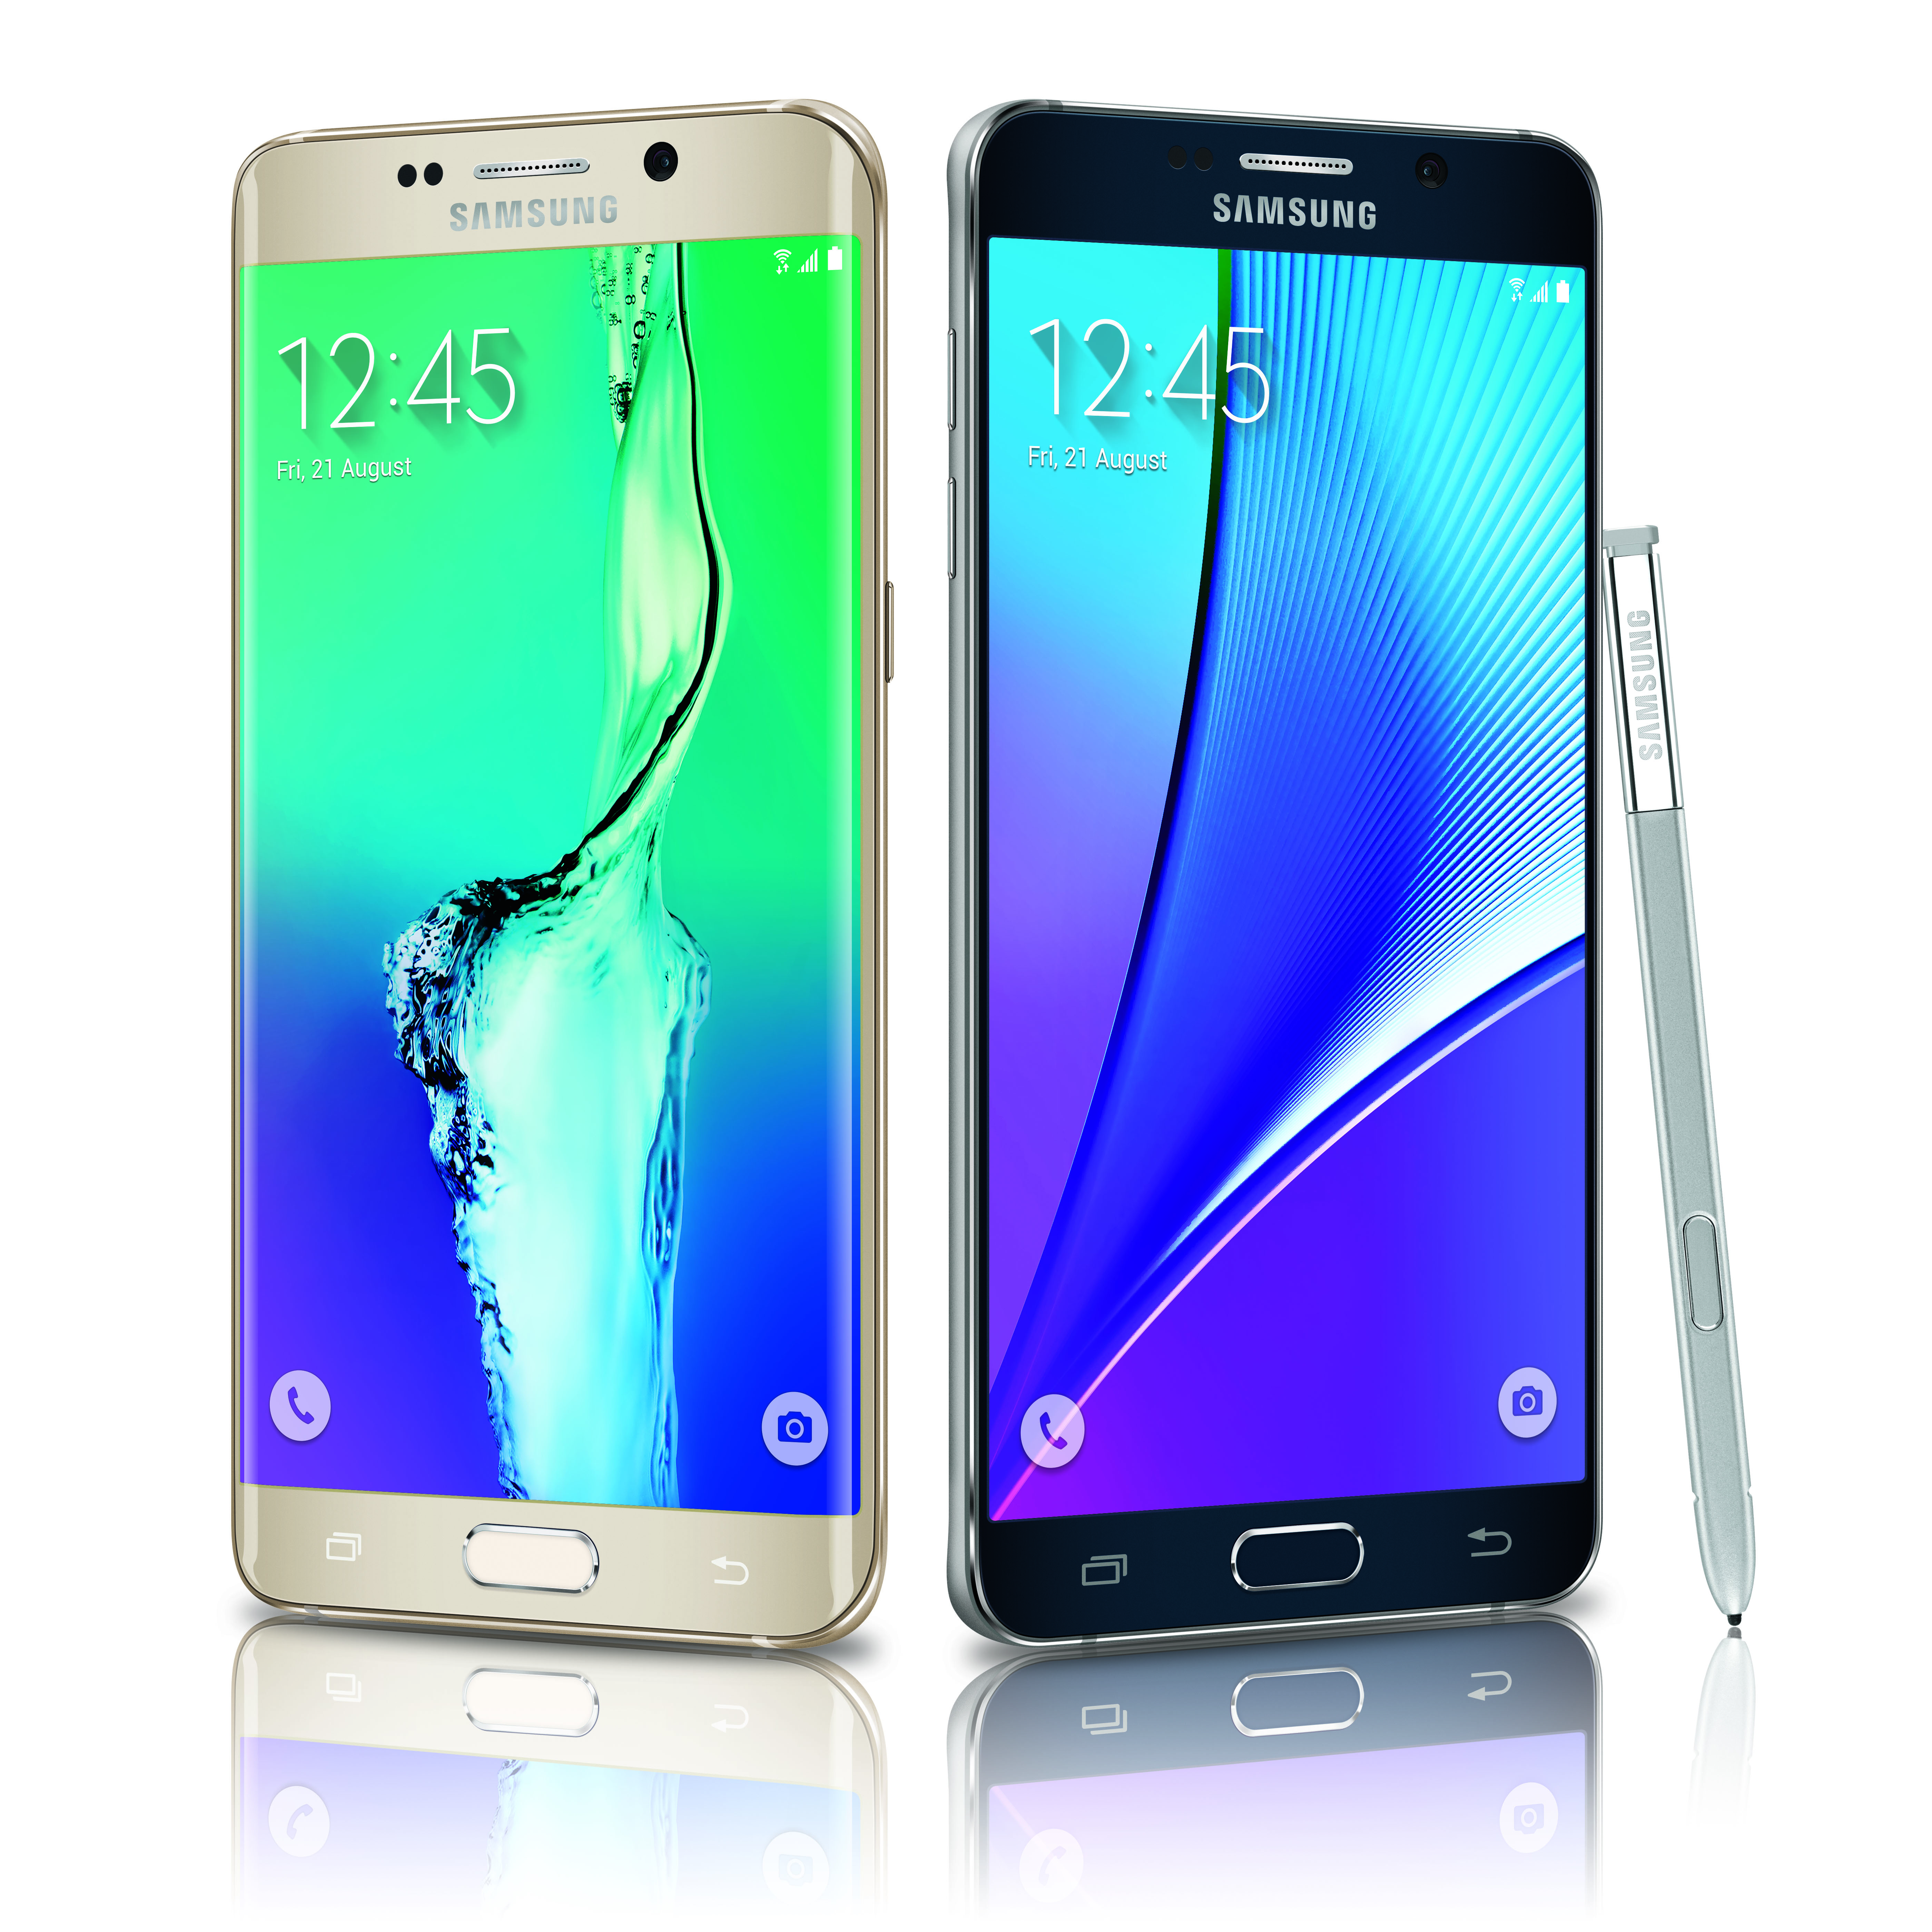 The Samsung Galaxy S6 edge+ (left), and the Note5 (right).